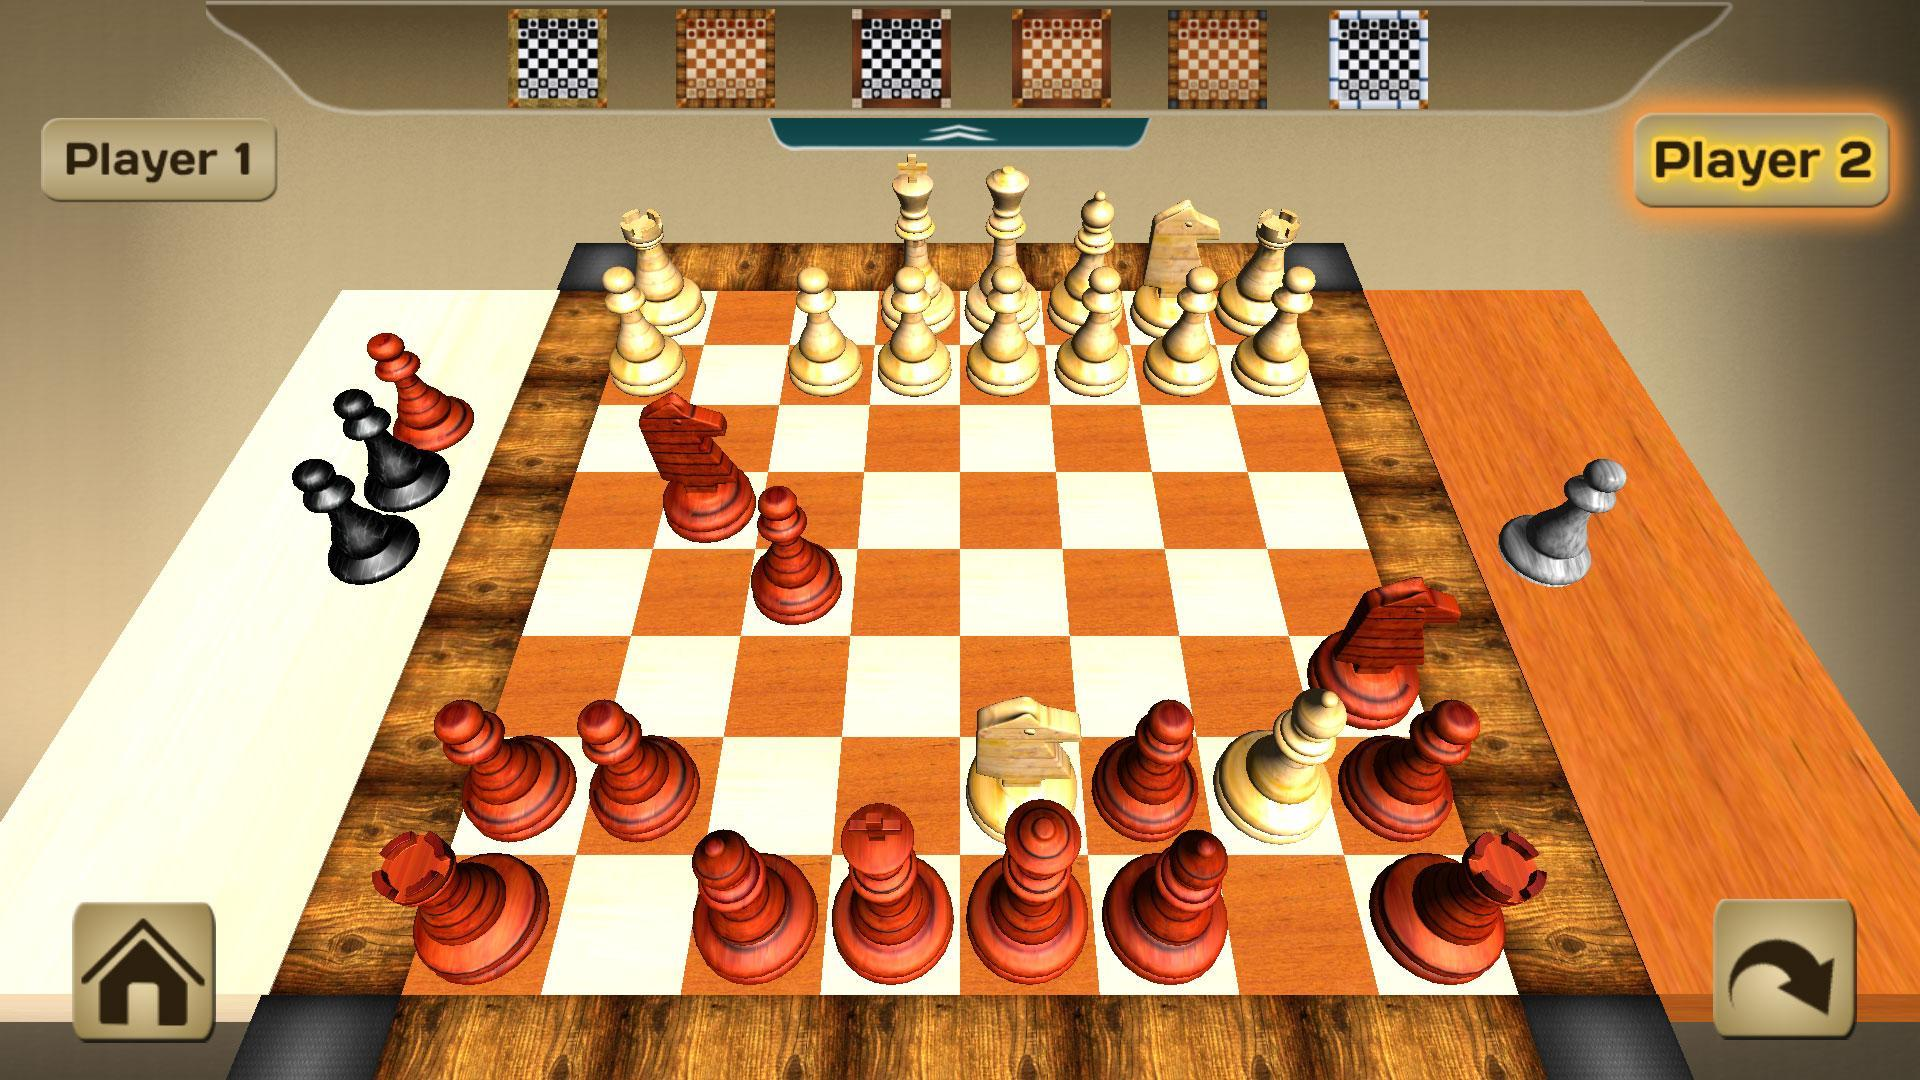 3D Chess - 2 Player for Android - APK Download